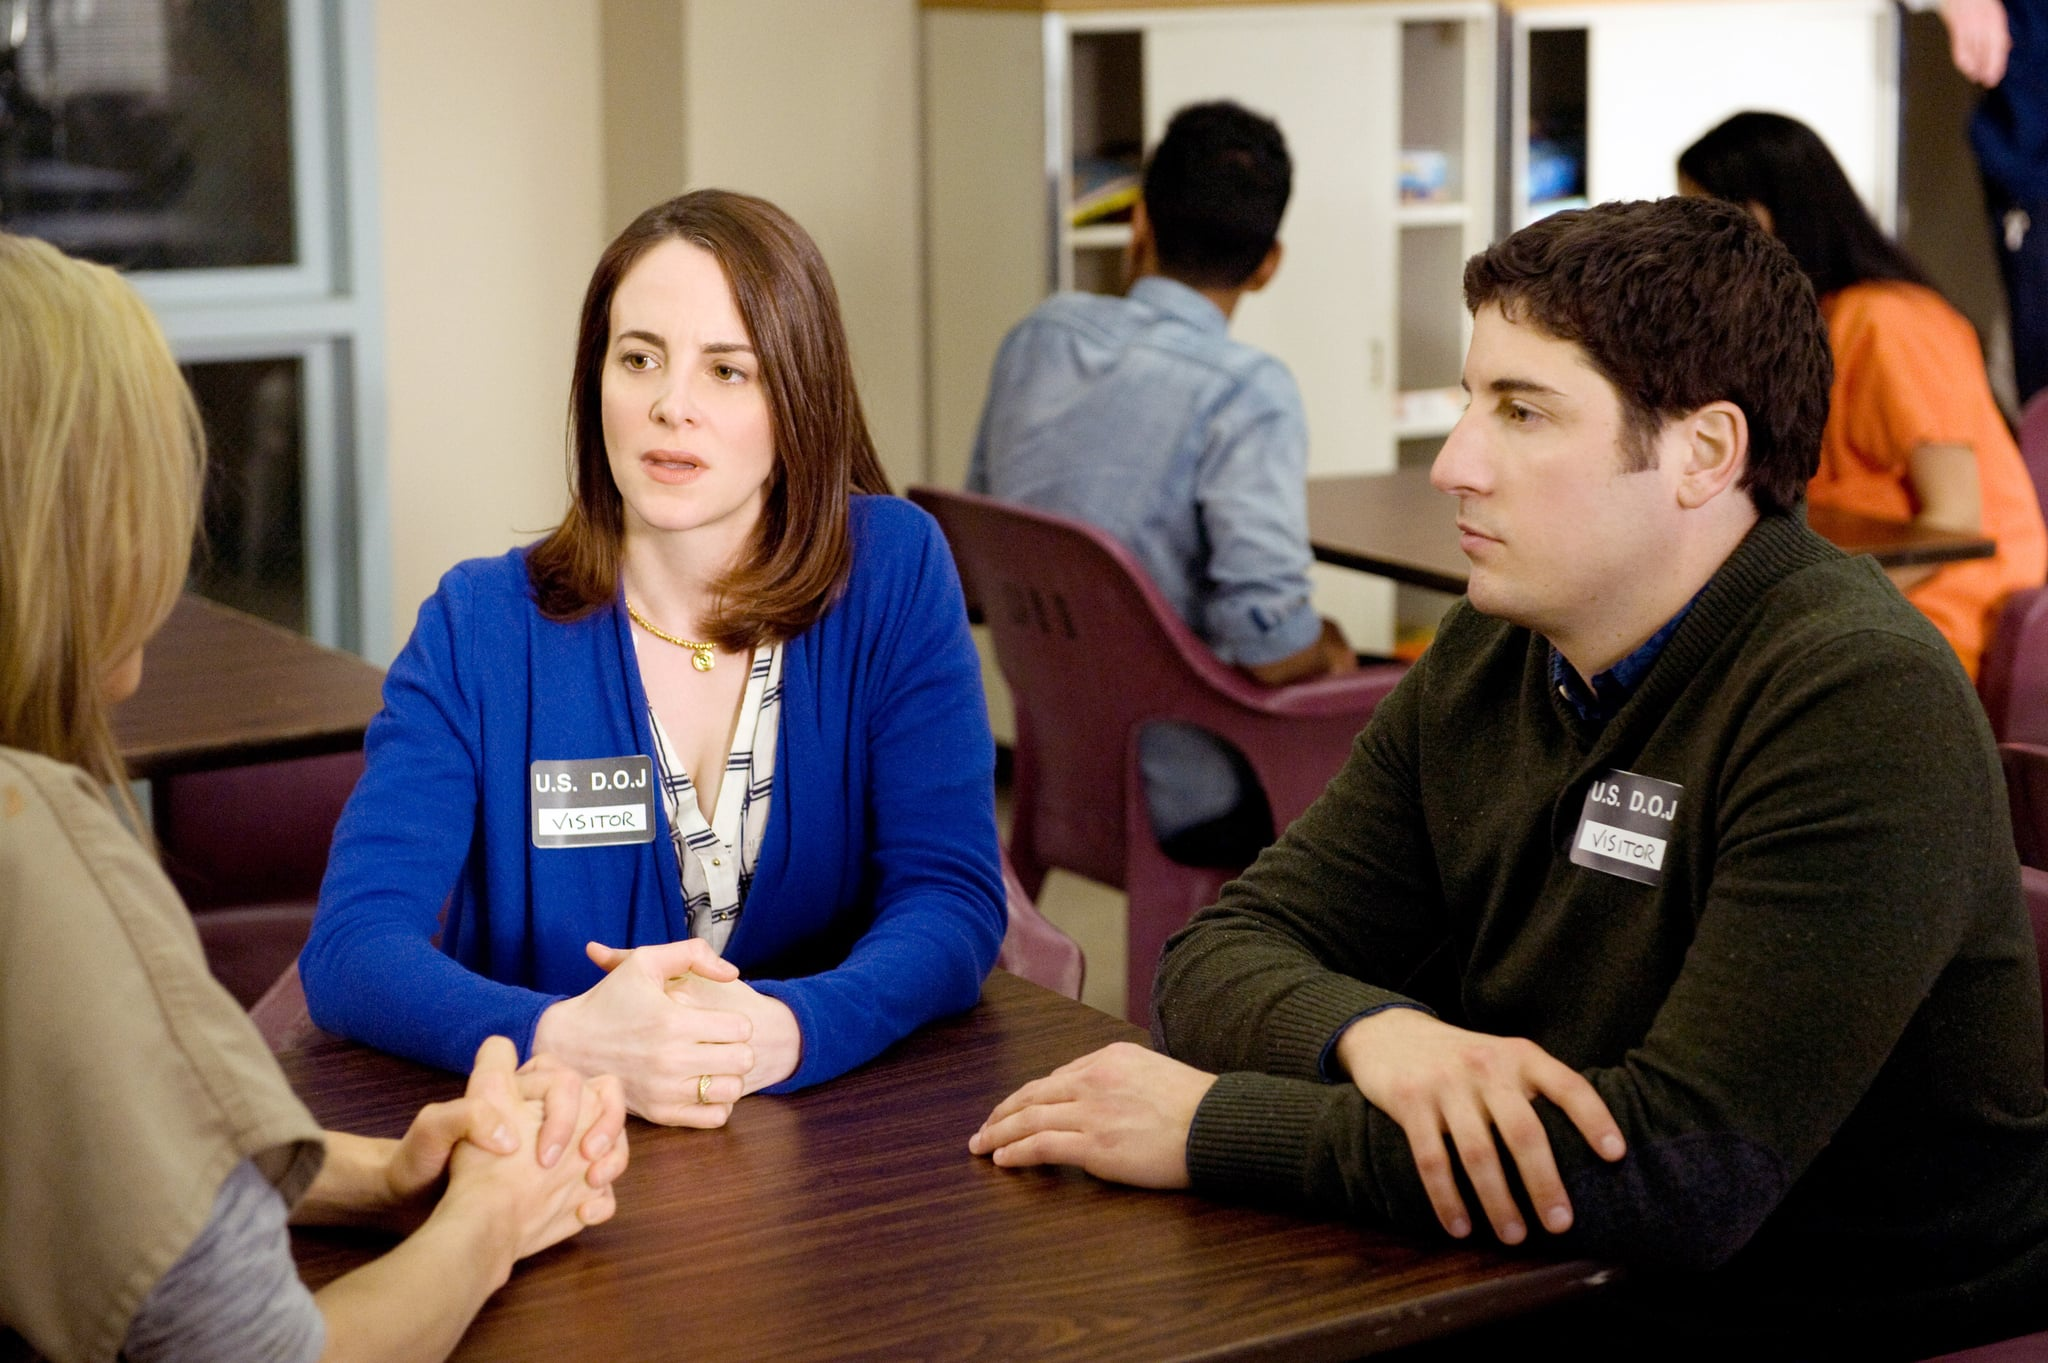 ORANGE IS THE NEW BLACK, (from left): Taylor Schilling (back to camera), Maria Dizzia, Jason Biggs, 'We Have Manners. We're Polite', (Season 2, ep. 213, airs June 6, 2014). photo: JoJo Whilden / Netflix / courtesy Everett Collection